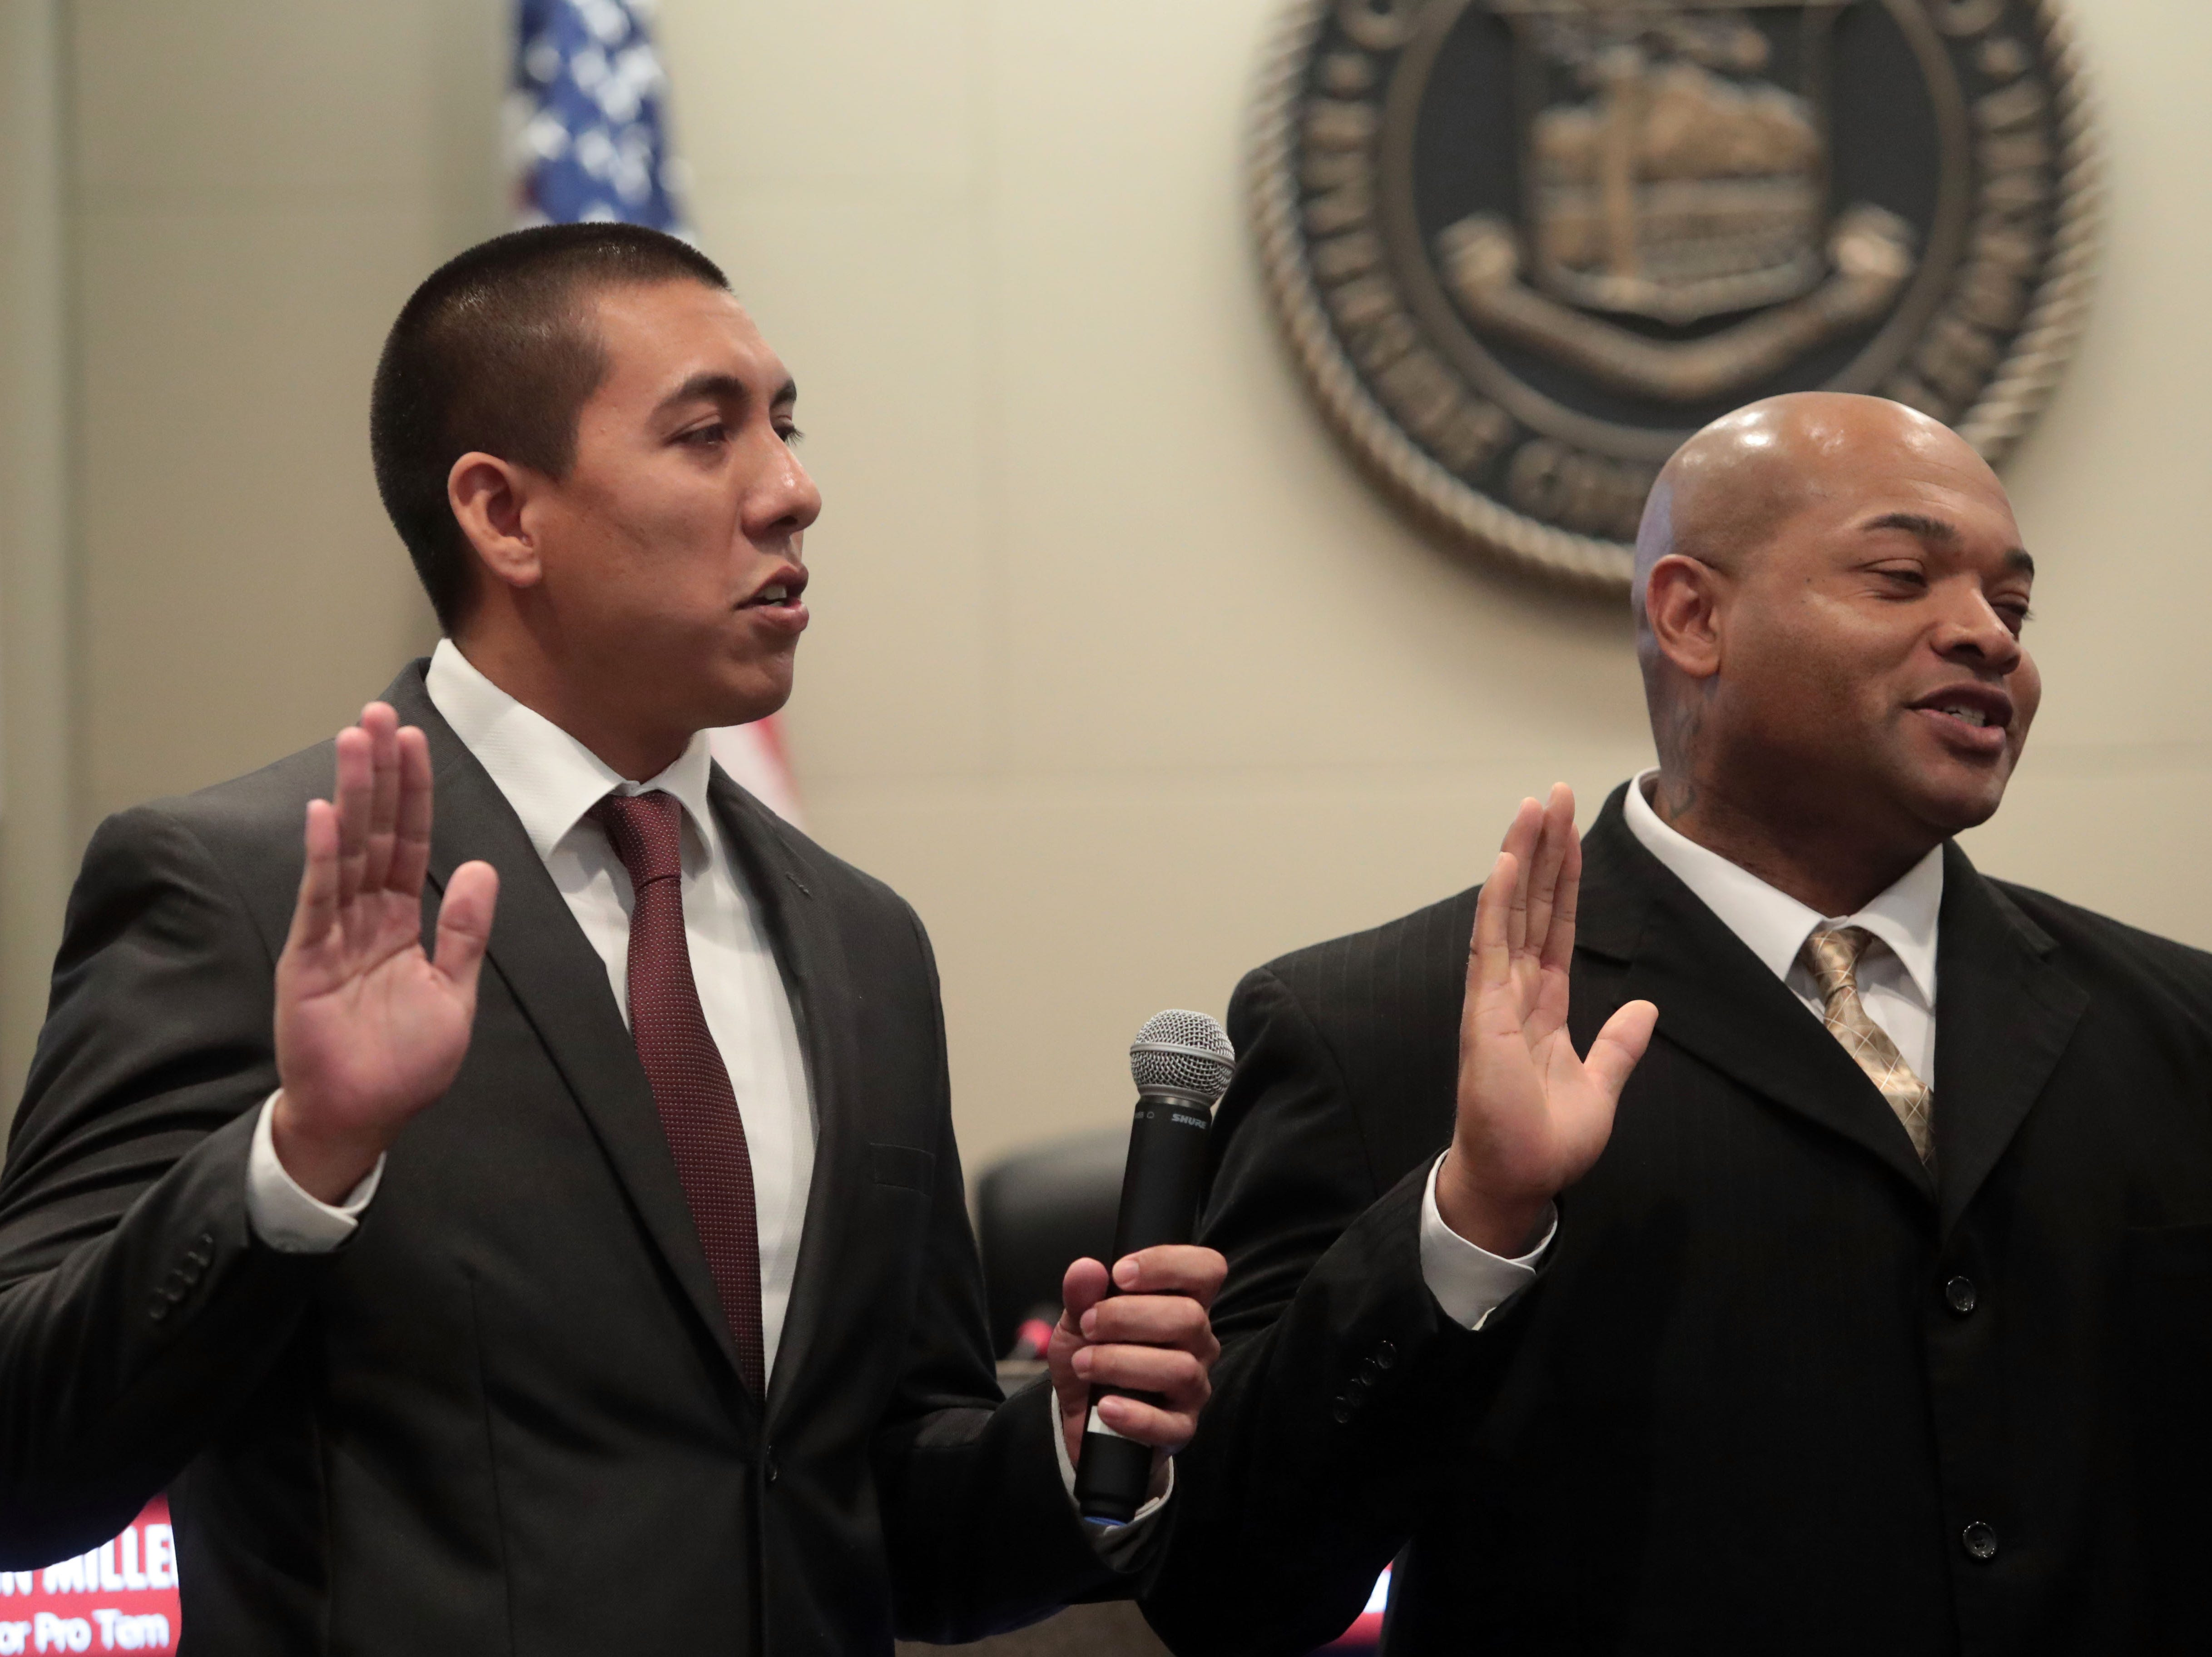 A note to Indio's mayor: Mr. Wilson, it's time to step aside